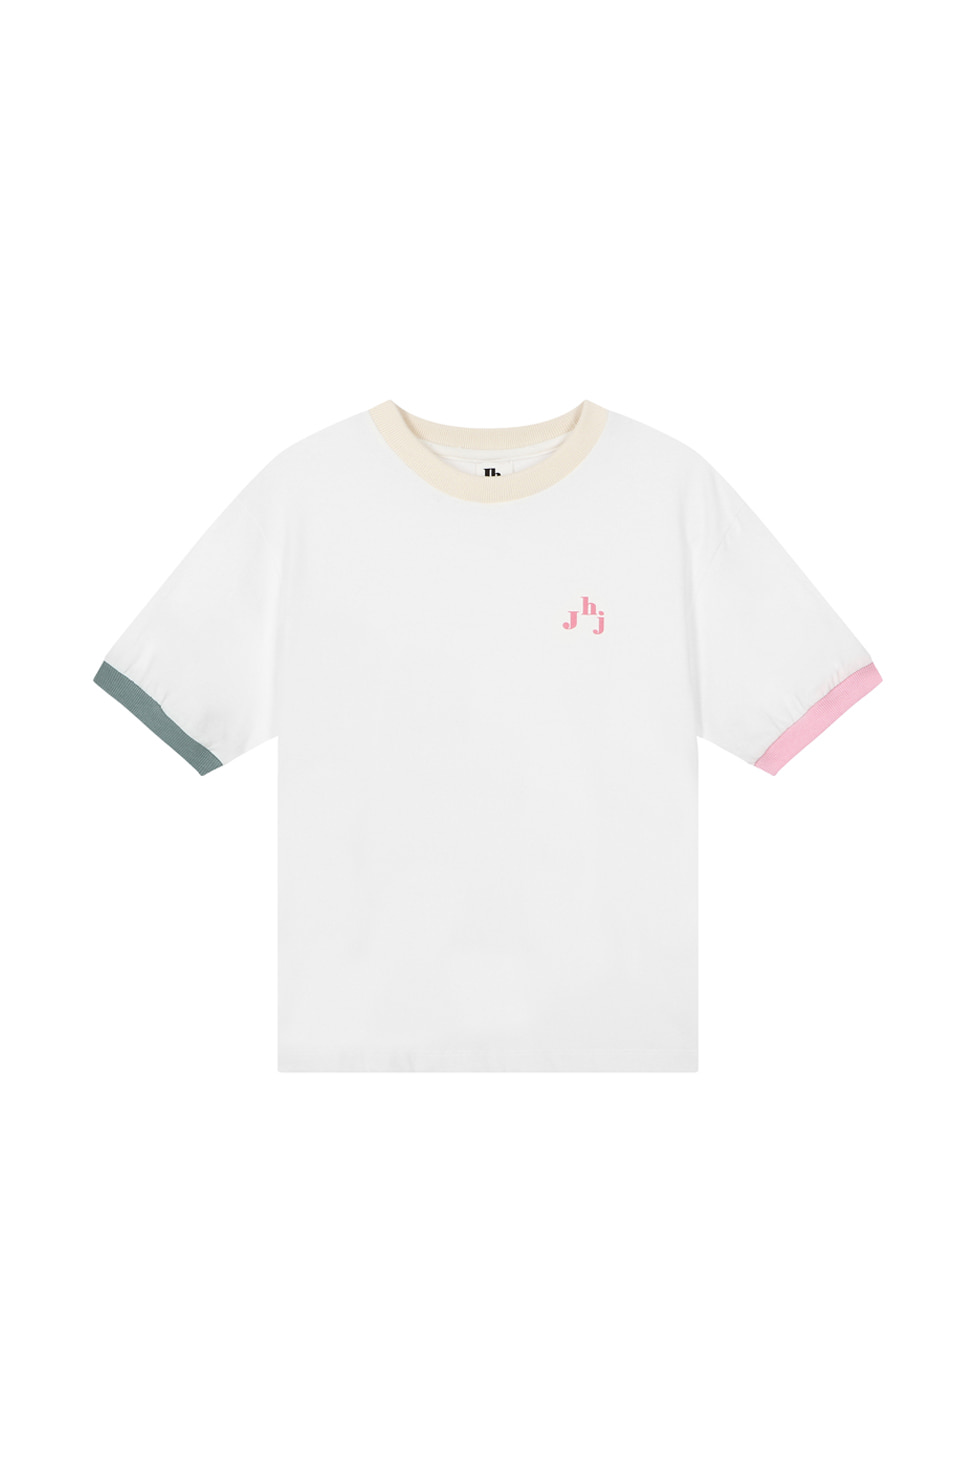 JHZ COLOR BLOCK T-SHIRTS - WHITE